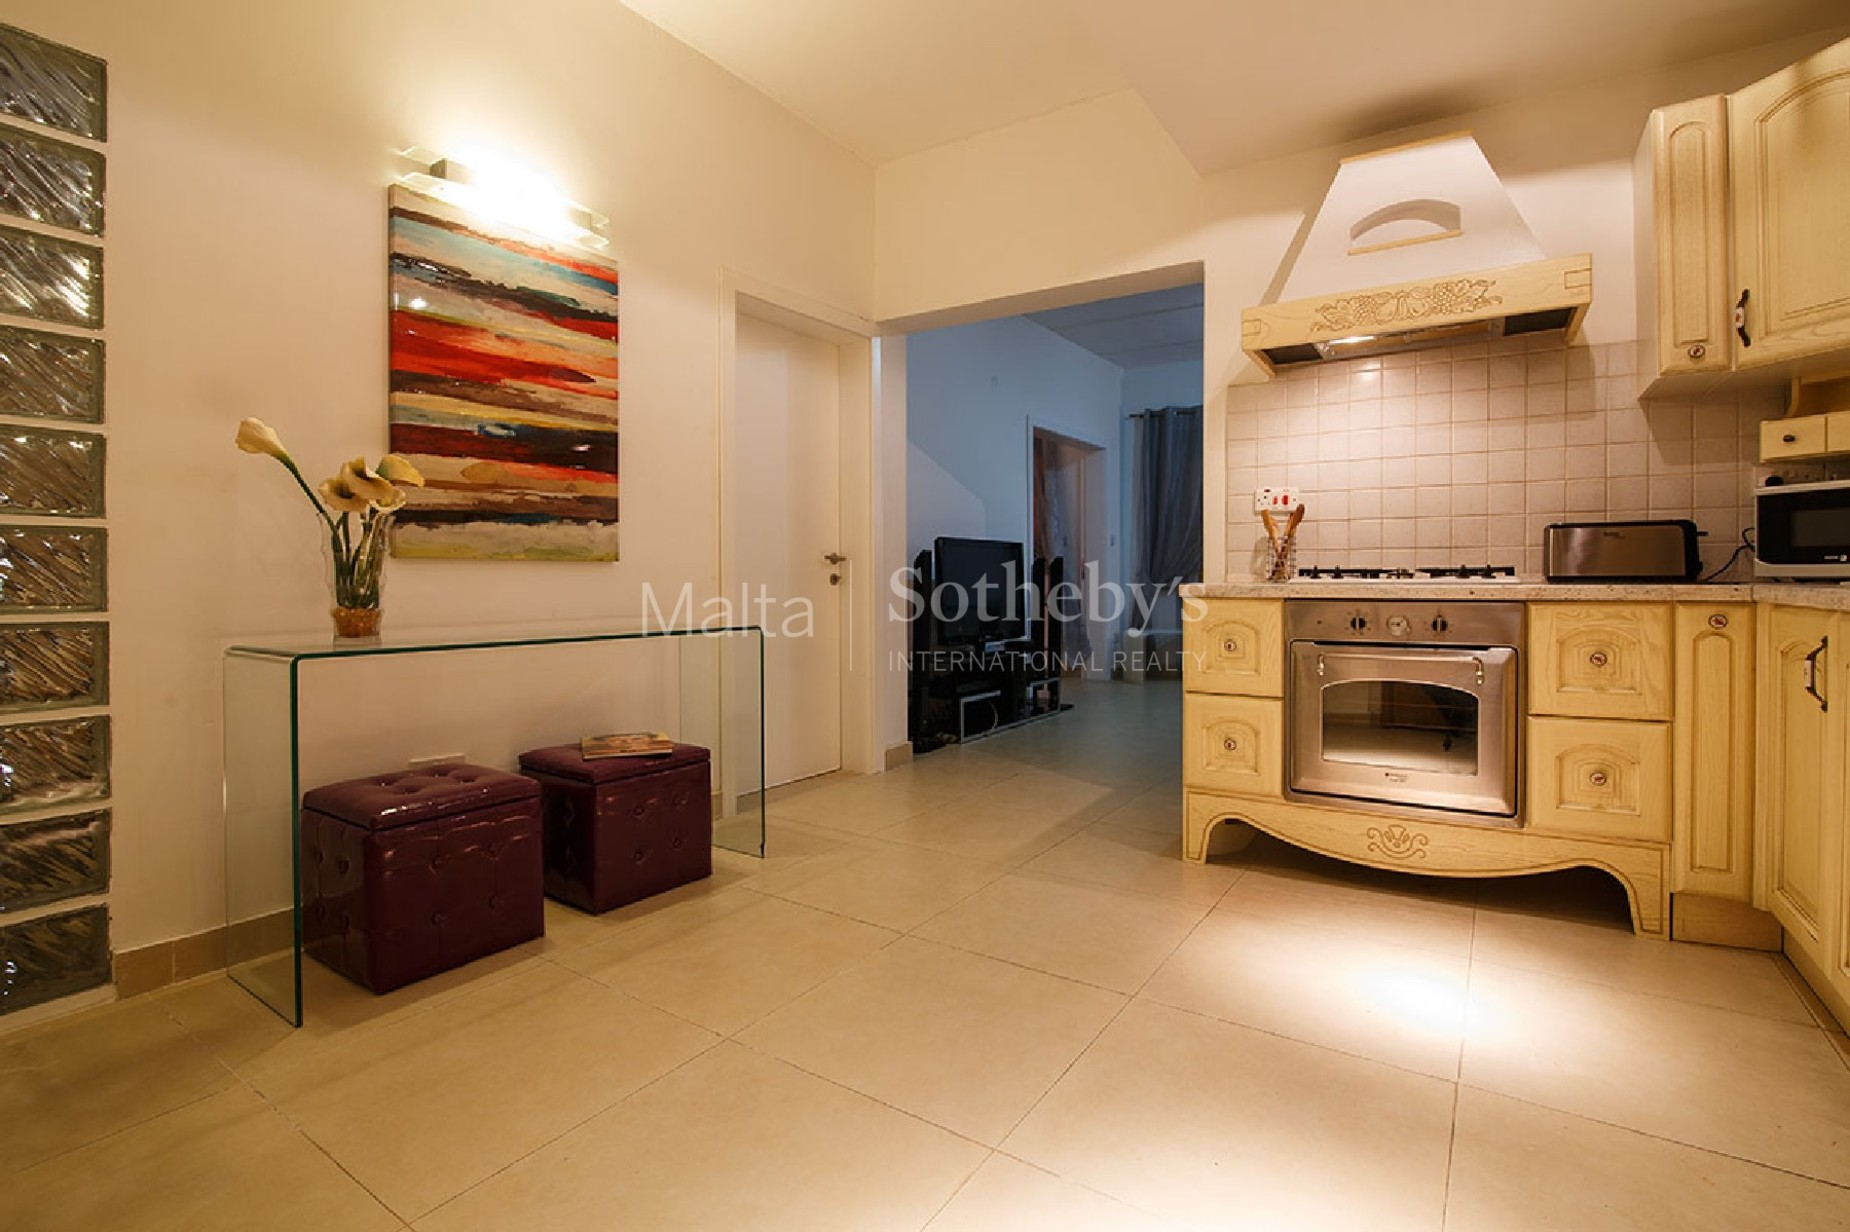 2 bed Apartment For Rent in Valletta, Valletta - thumb 2